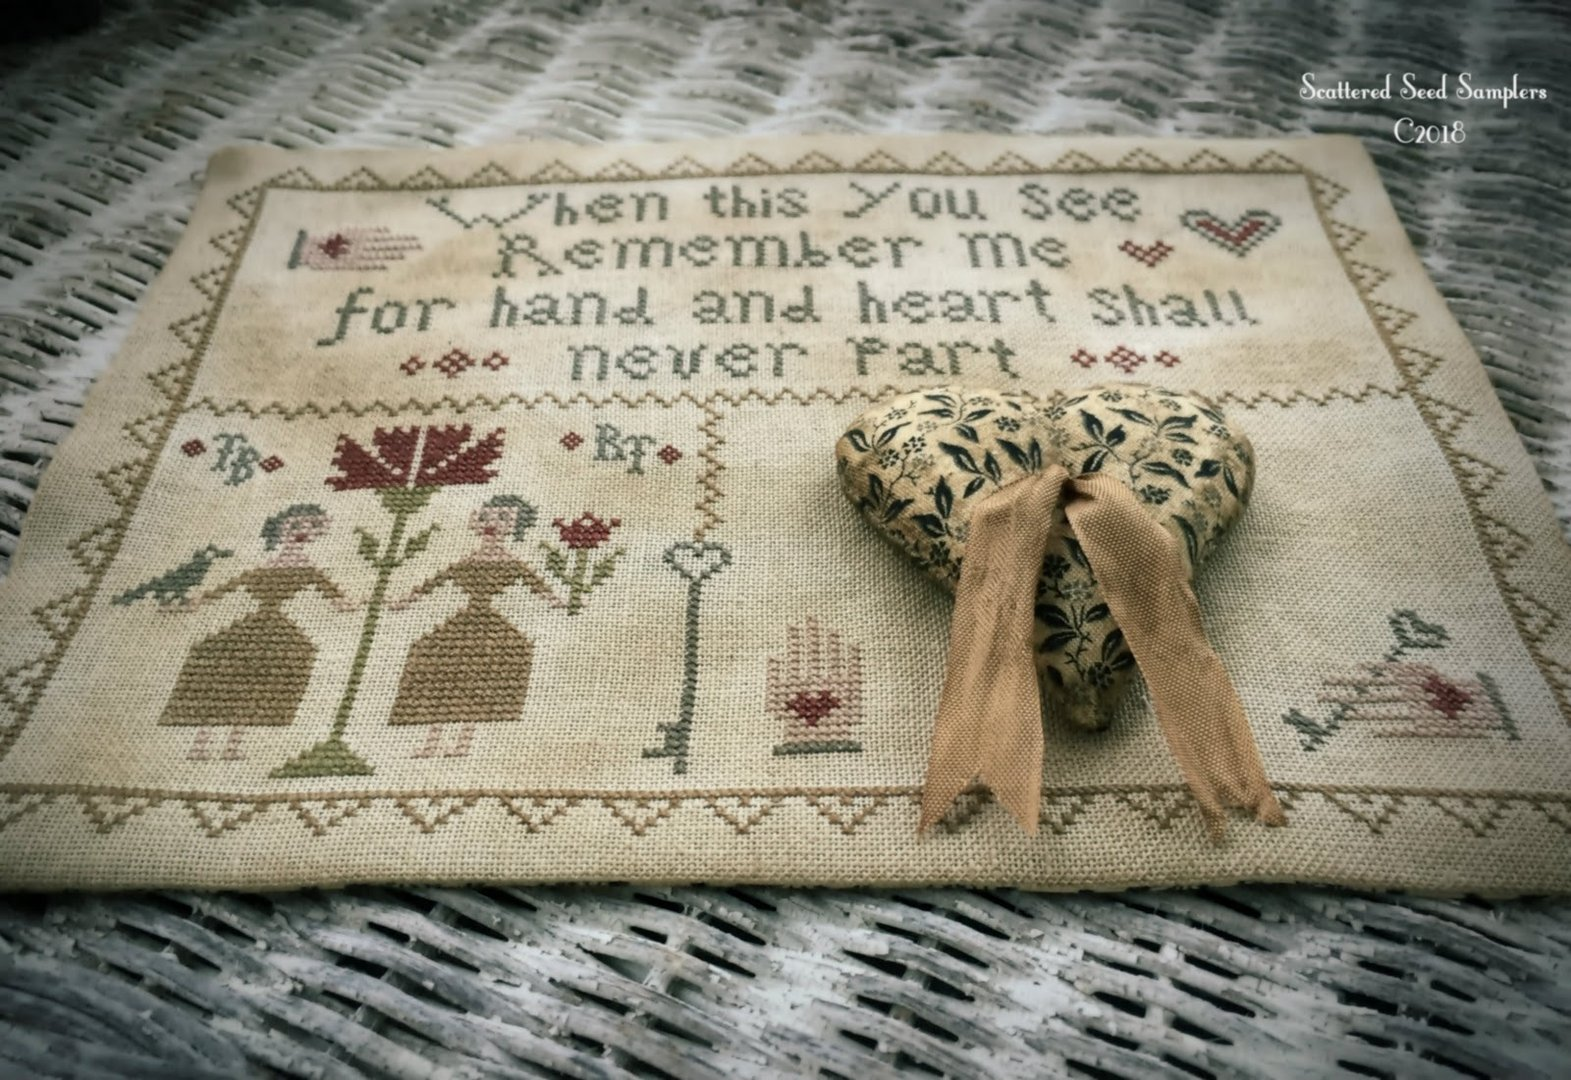 Scattered Seed Samplers - Hand & Heart Stitcher's Mat